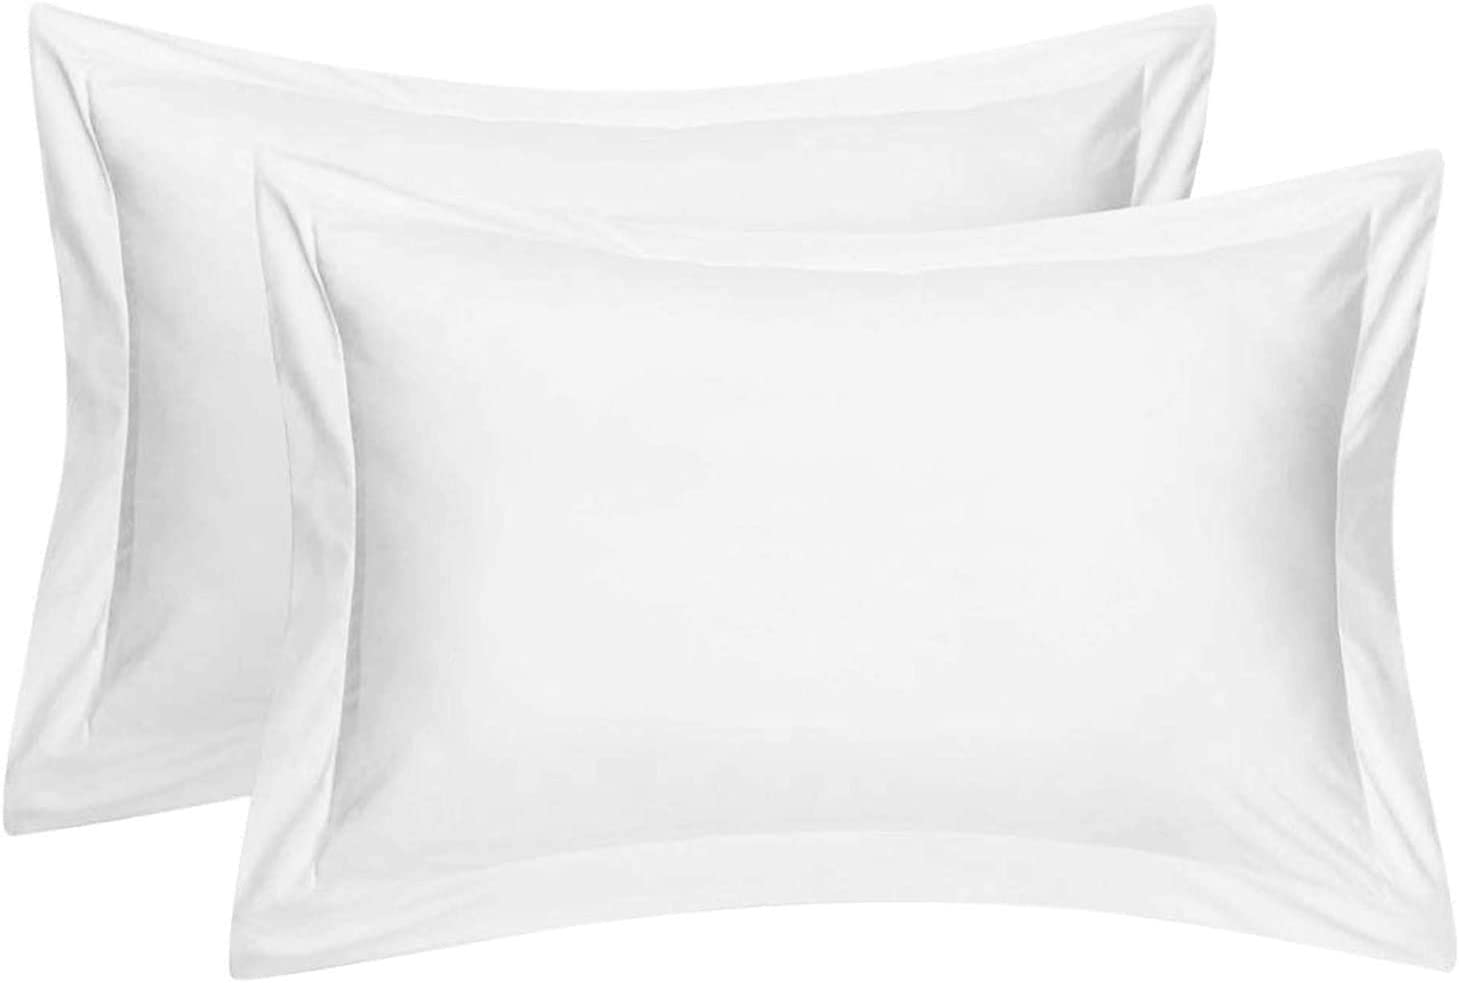 Cotton Metrics Heavy Quality King Pillow Shams Set of 2 White 600TC 100% Organic Cotton White Pillow Shams King Size 20X40 Decorative Pillow Cover with 2 Inch Flang